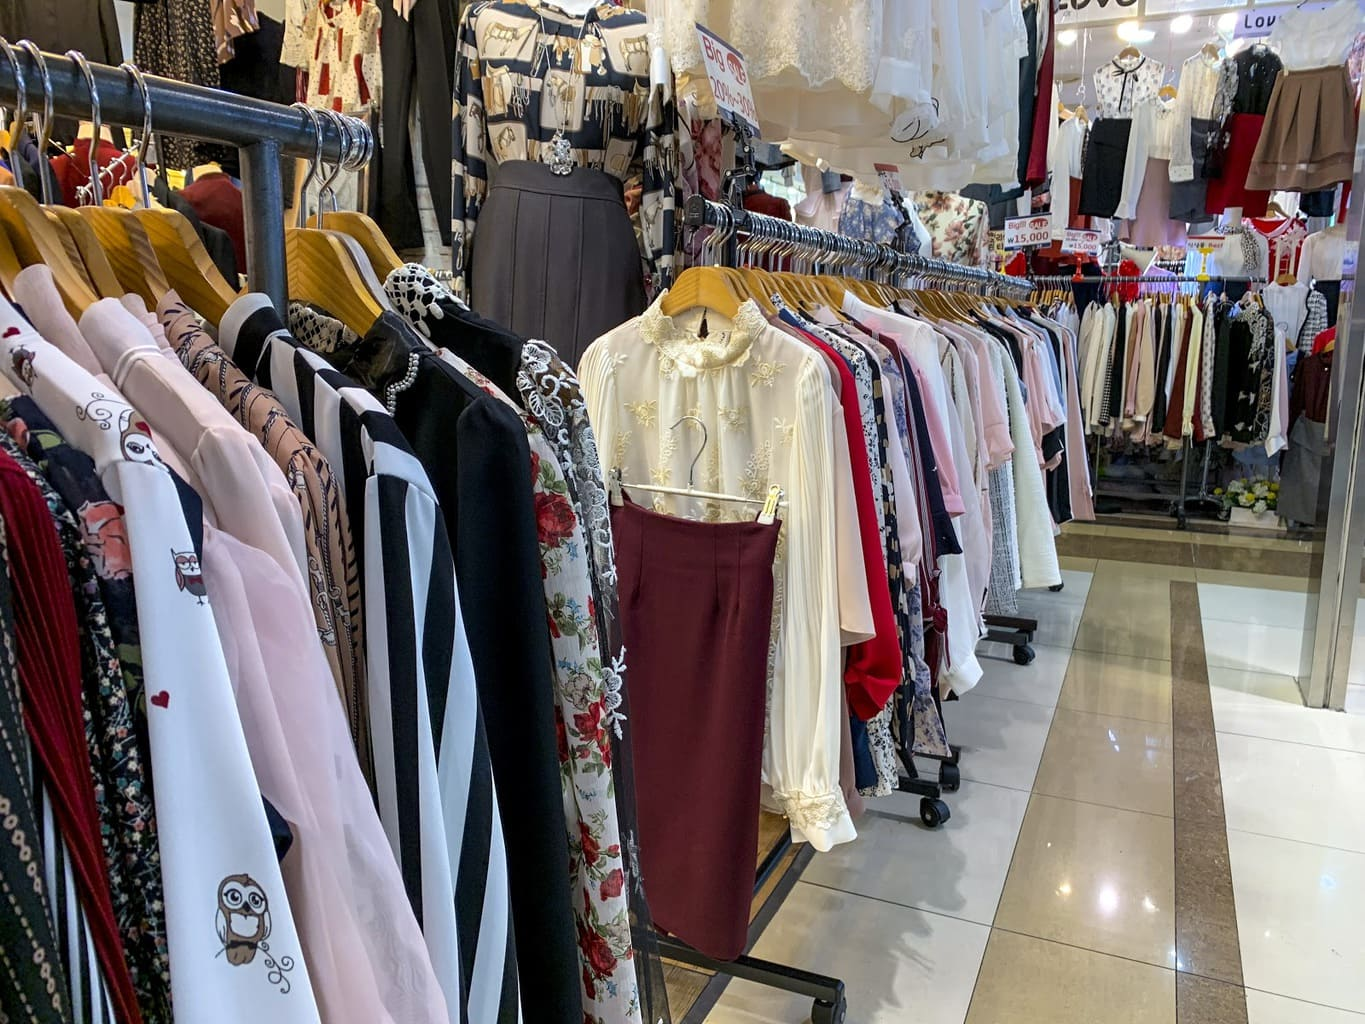 Shopping for clothes in Dongdaemun